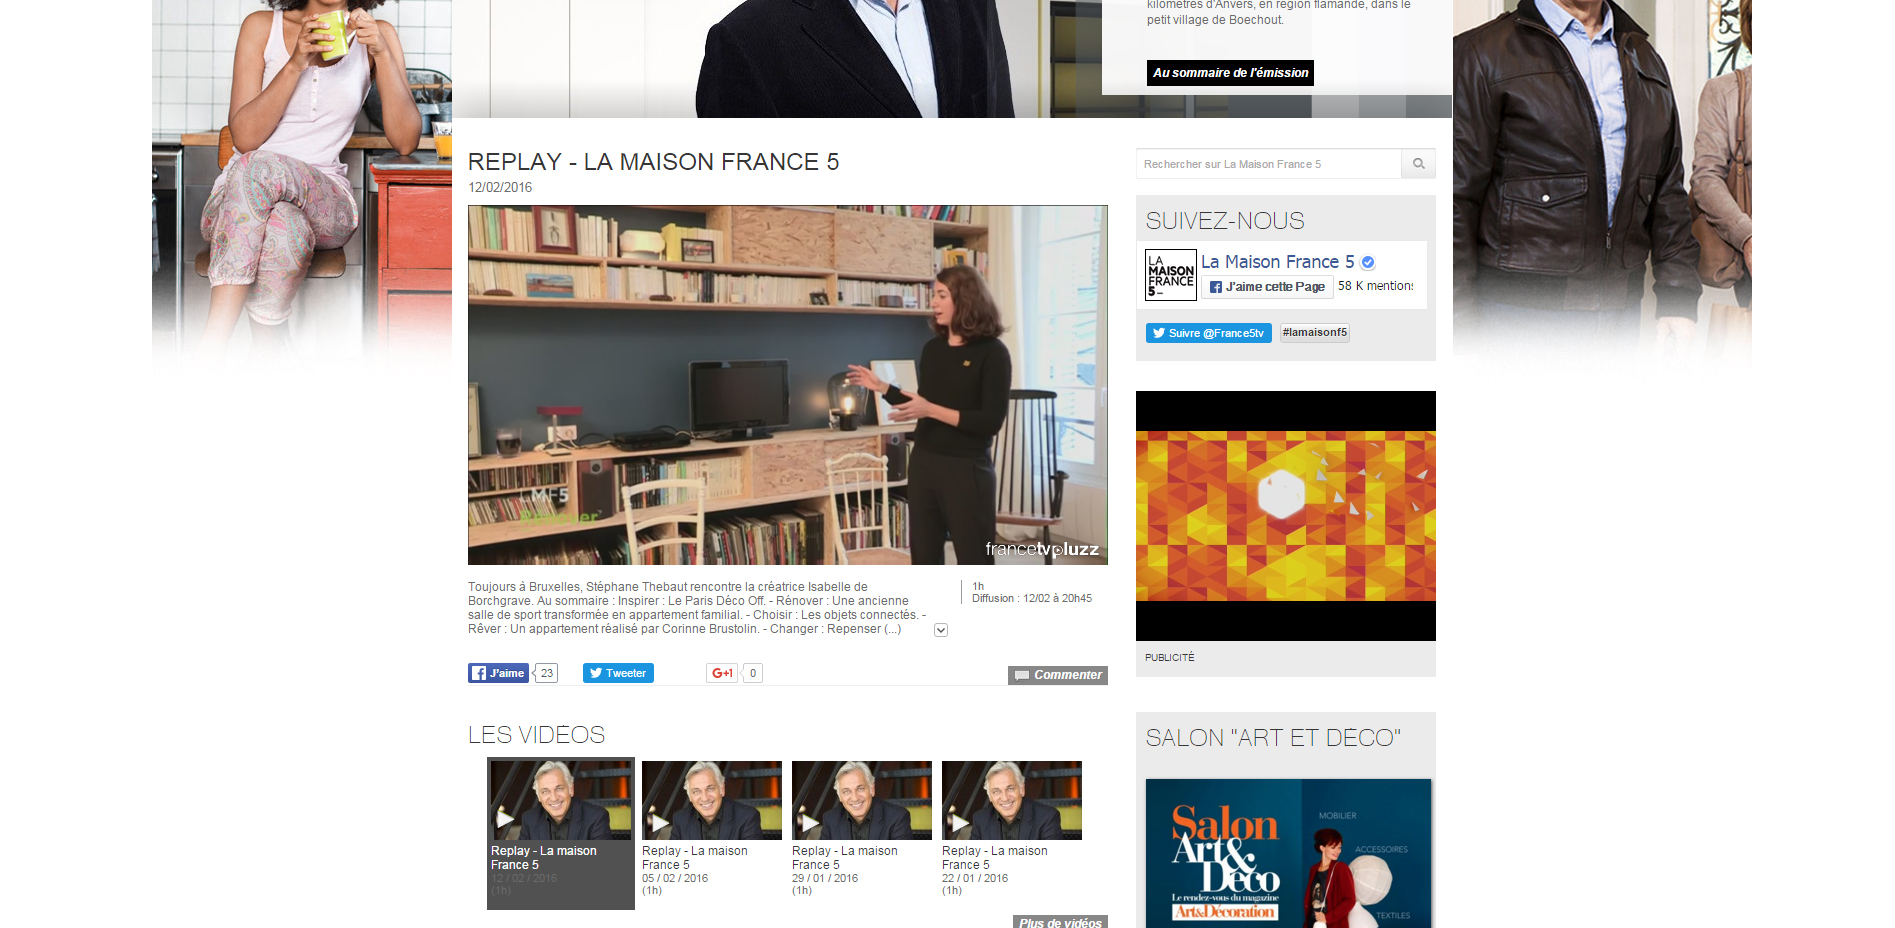 Maison france 5 julie alazard for Animateur maison france 5